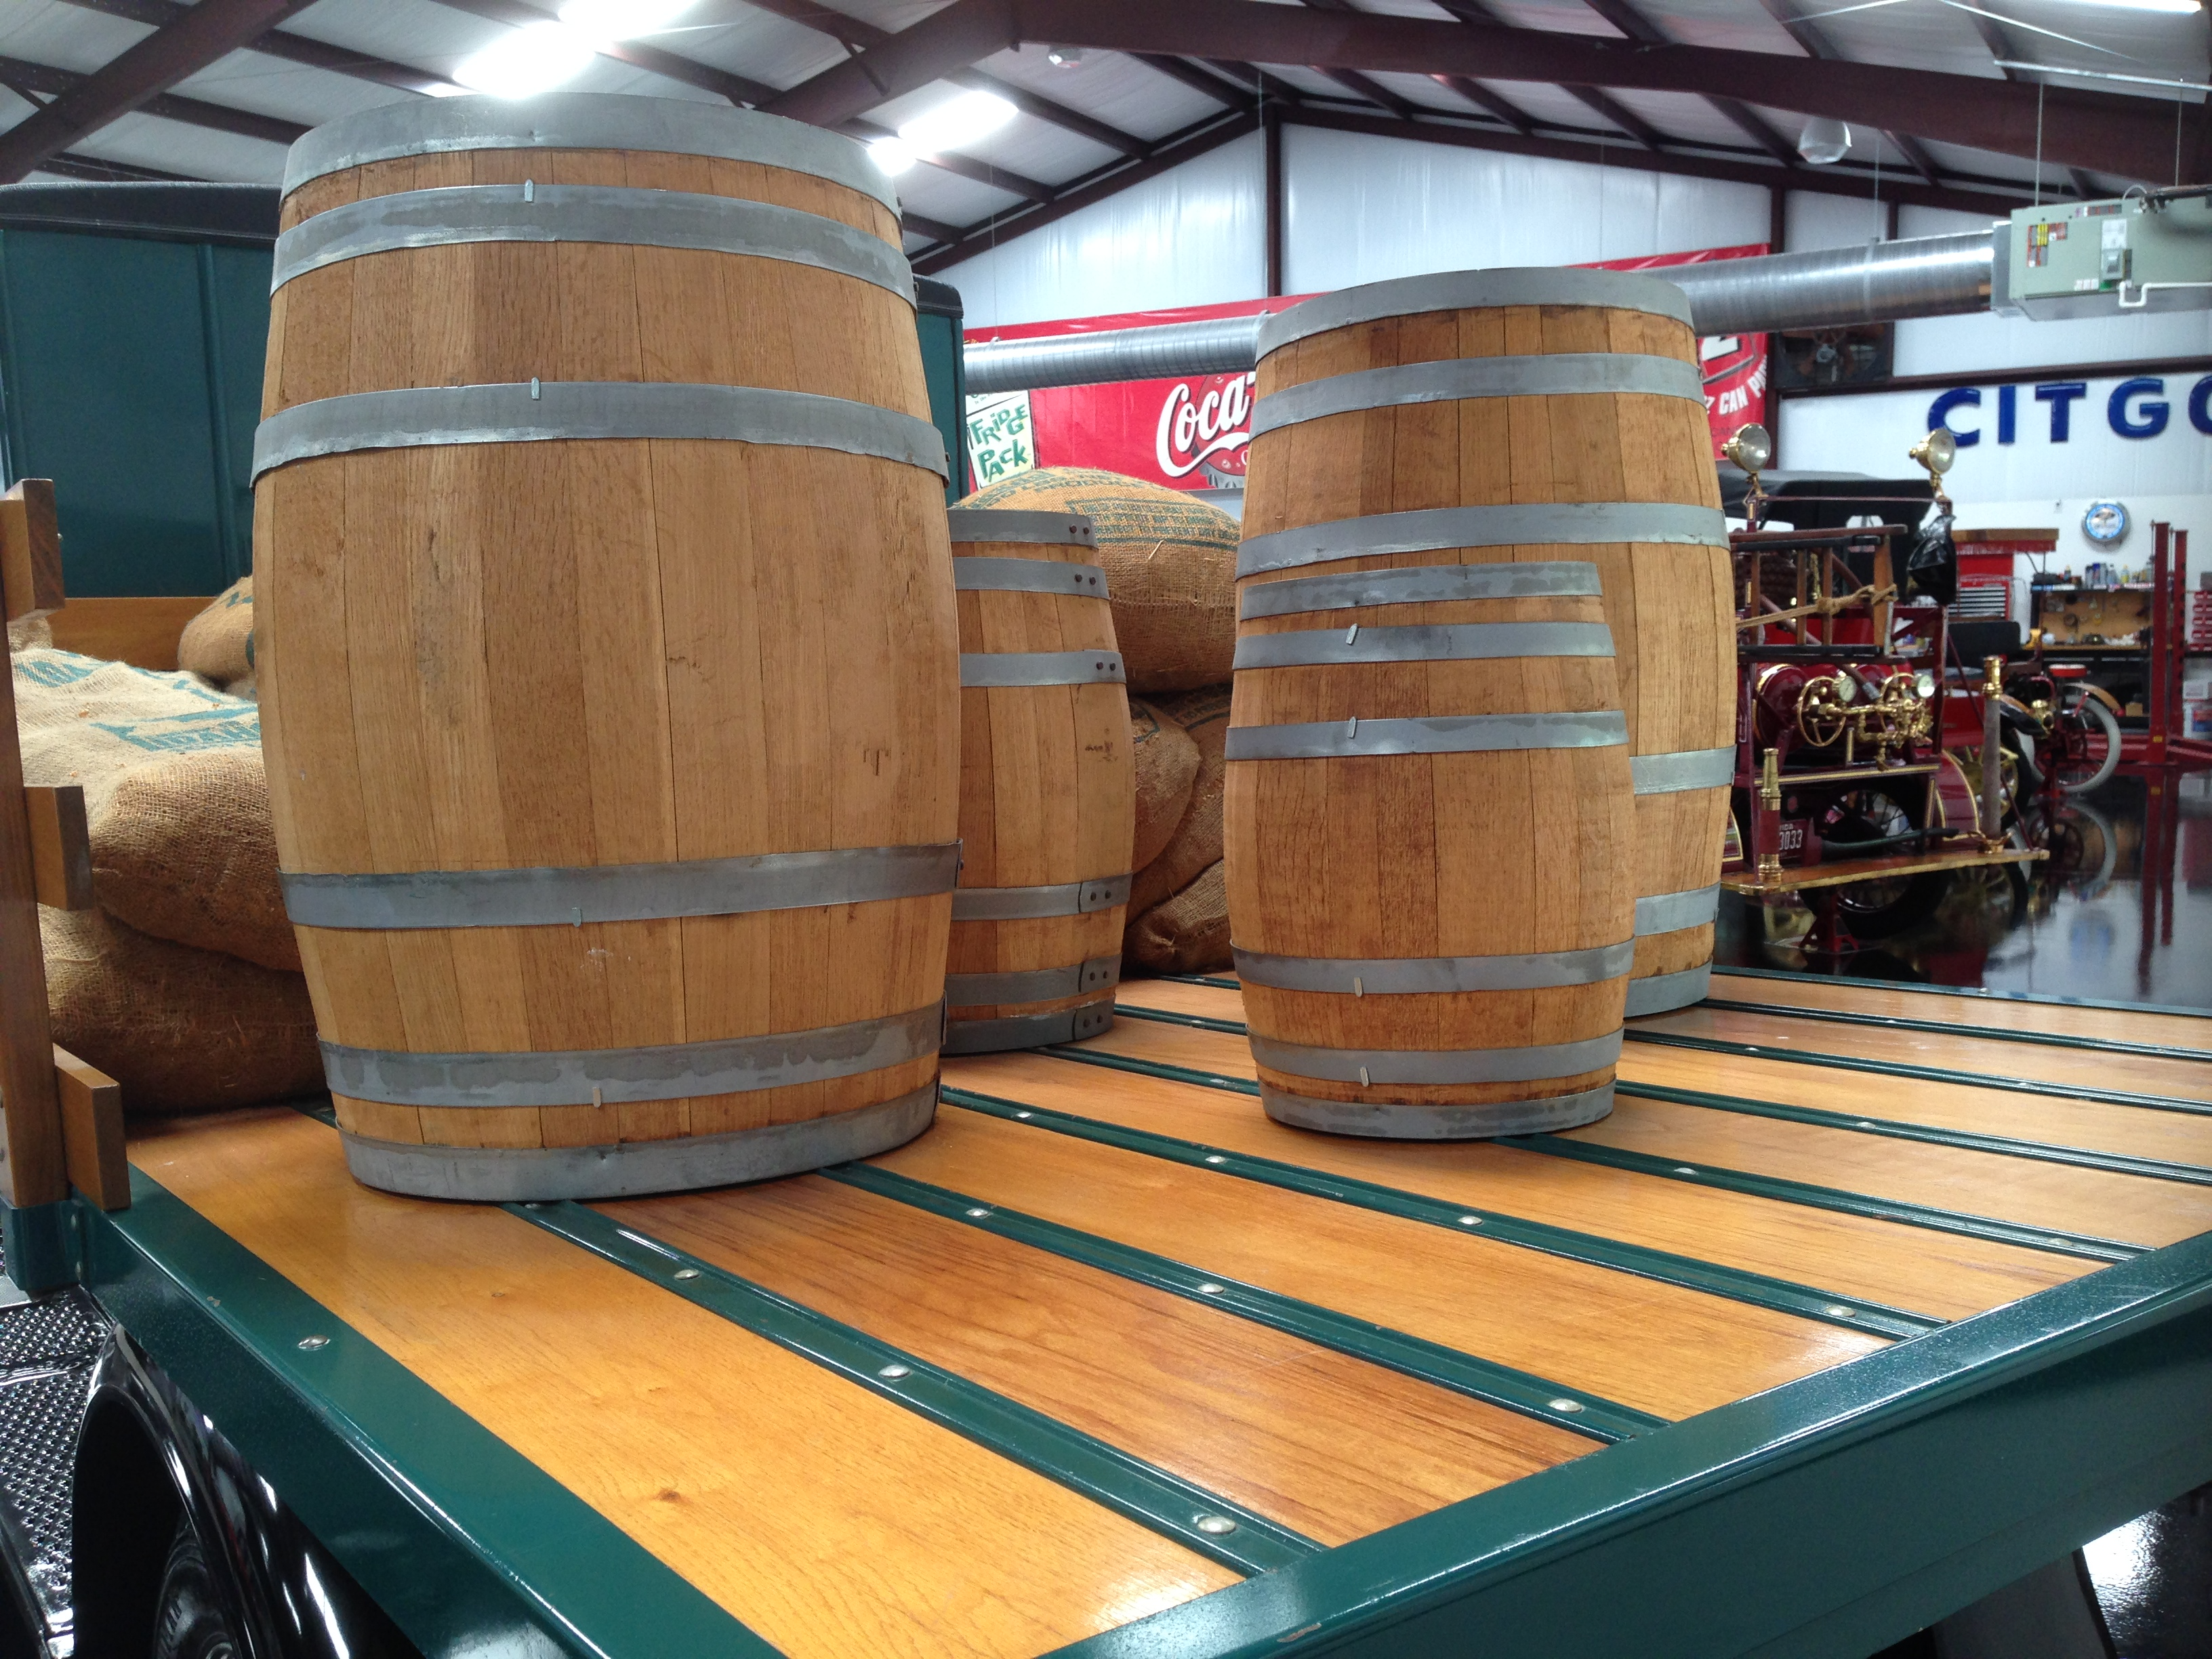 Antique Wiskey Barrels